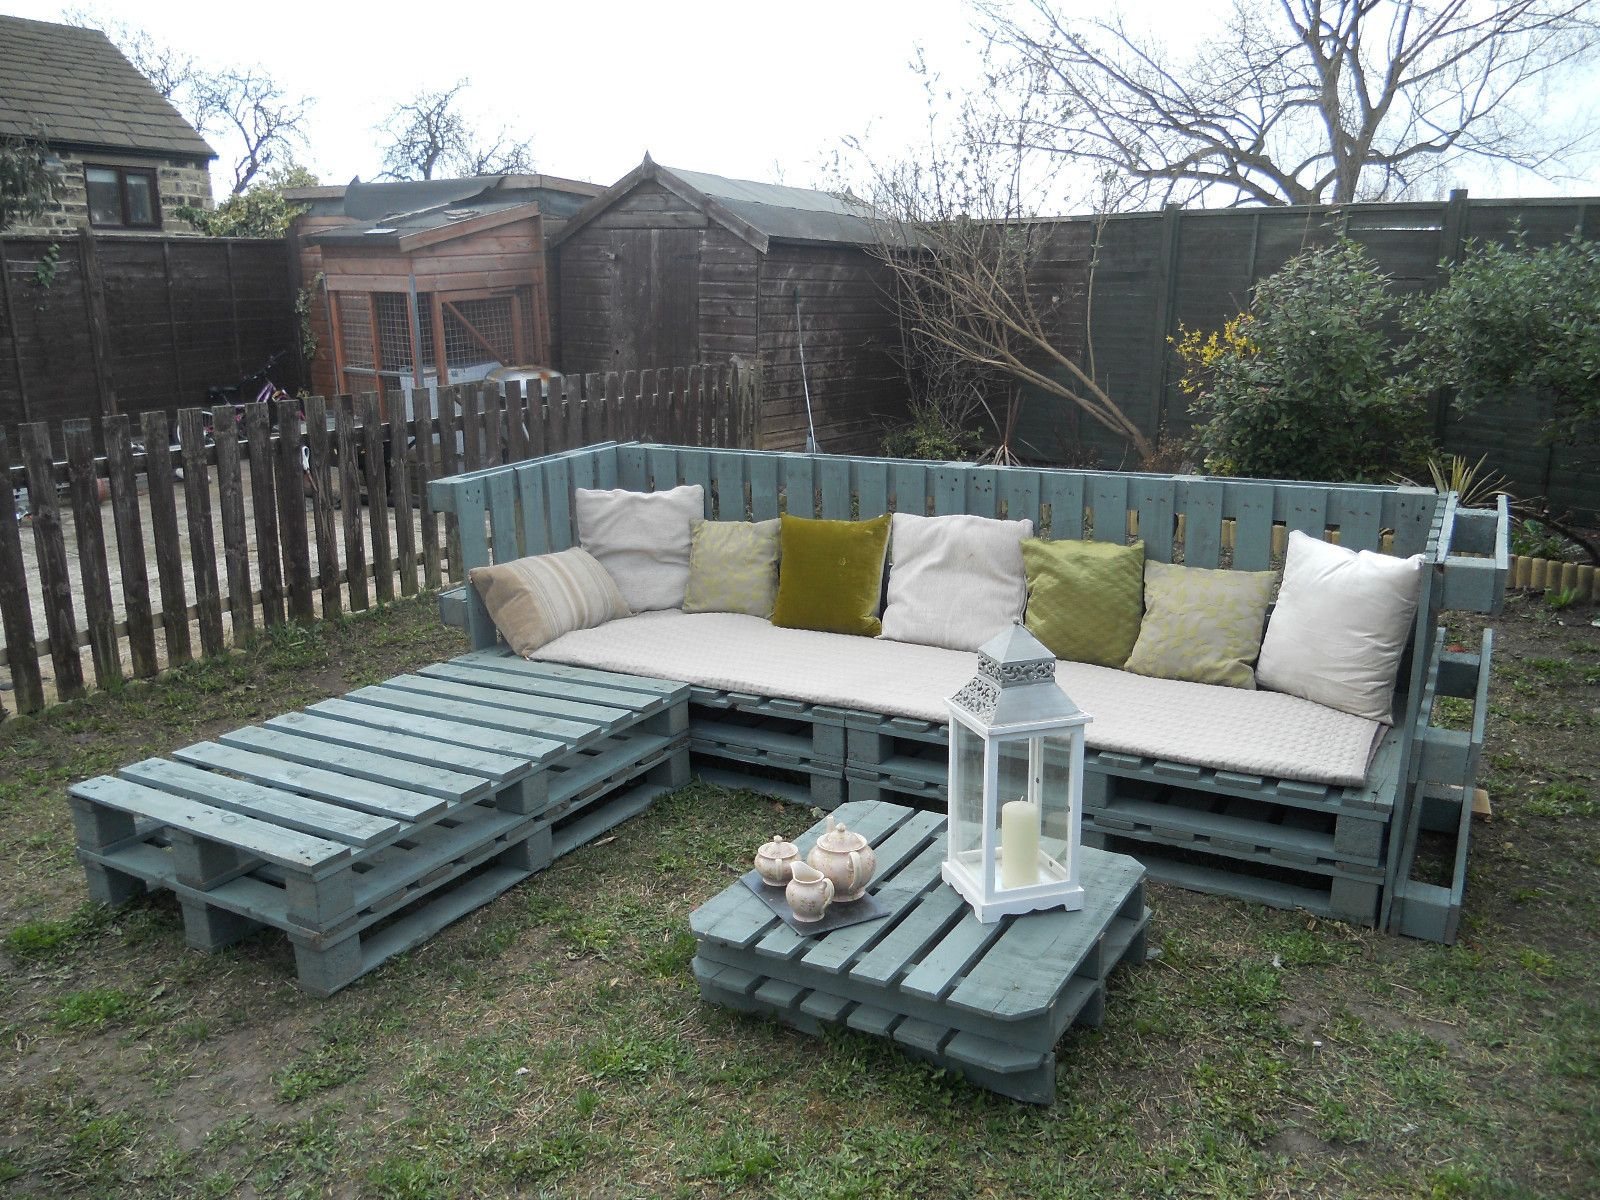 Outdoor furniture pallet garden furniture lawn furniture furniture ideas pallets garden